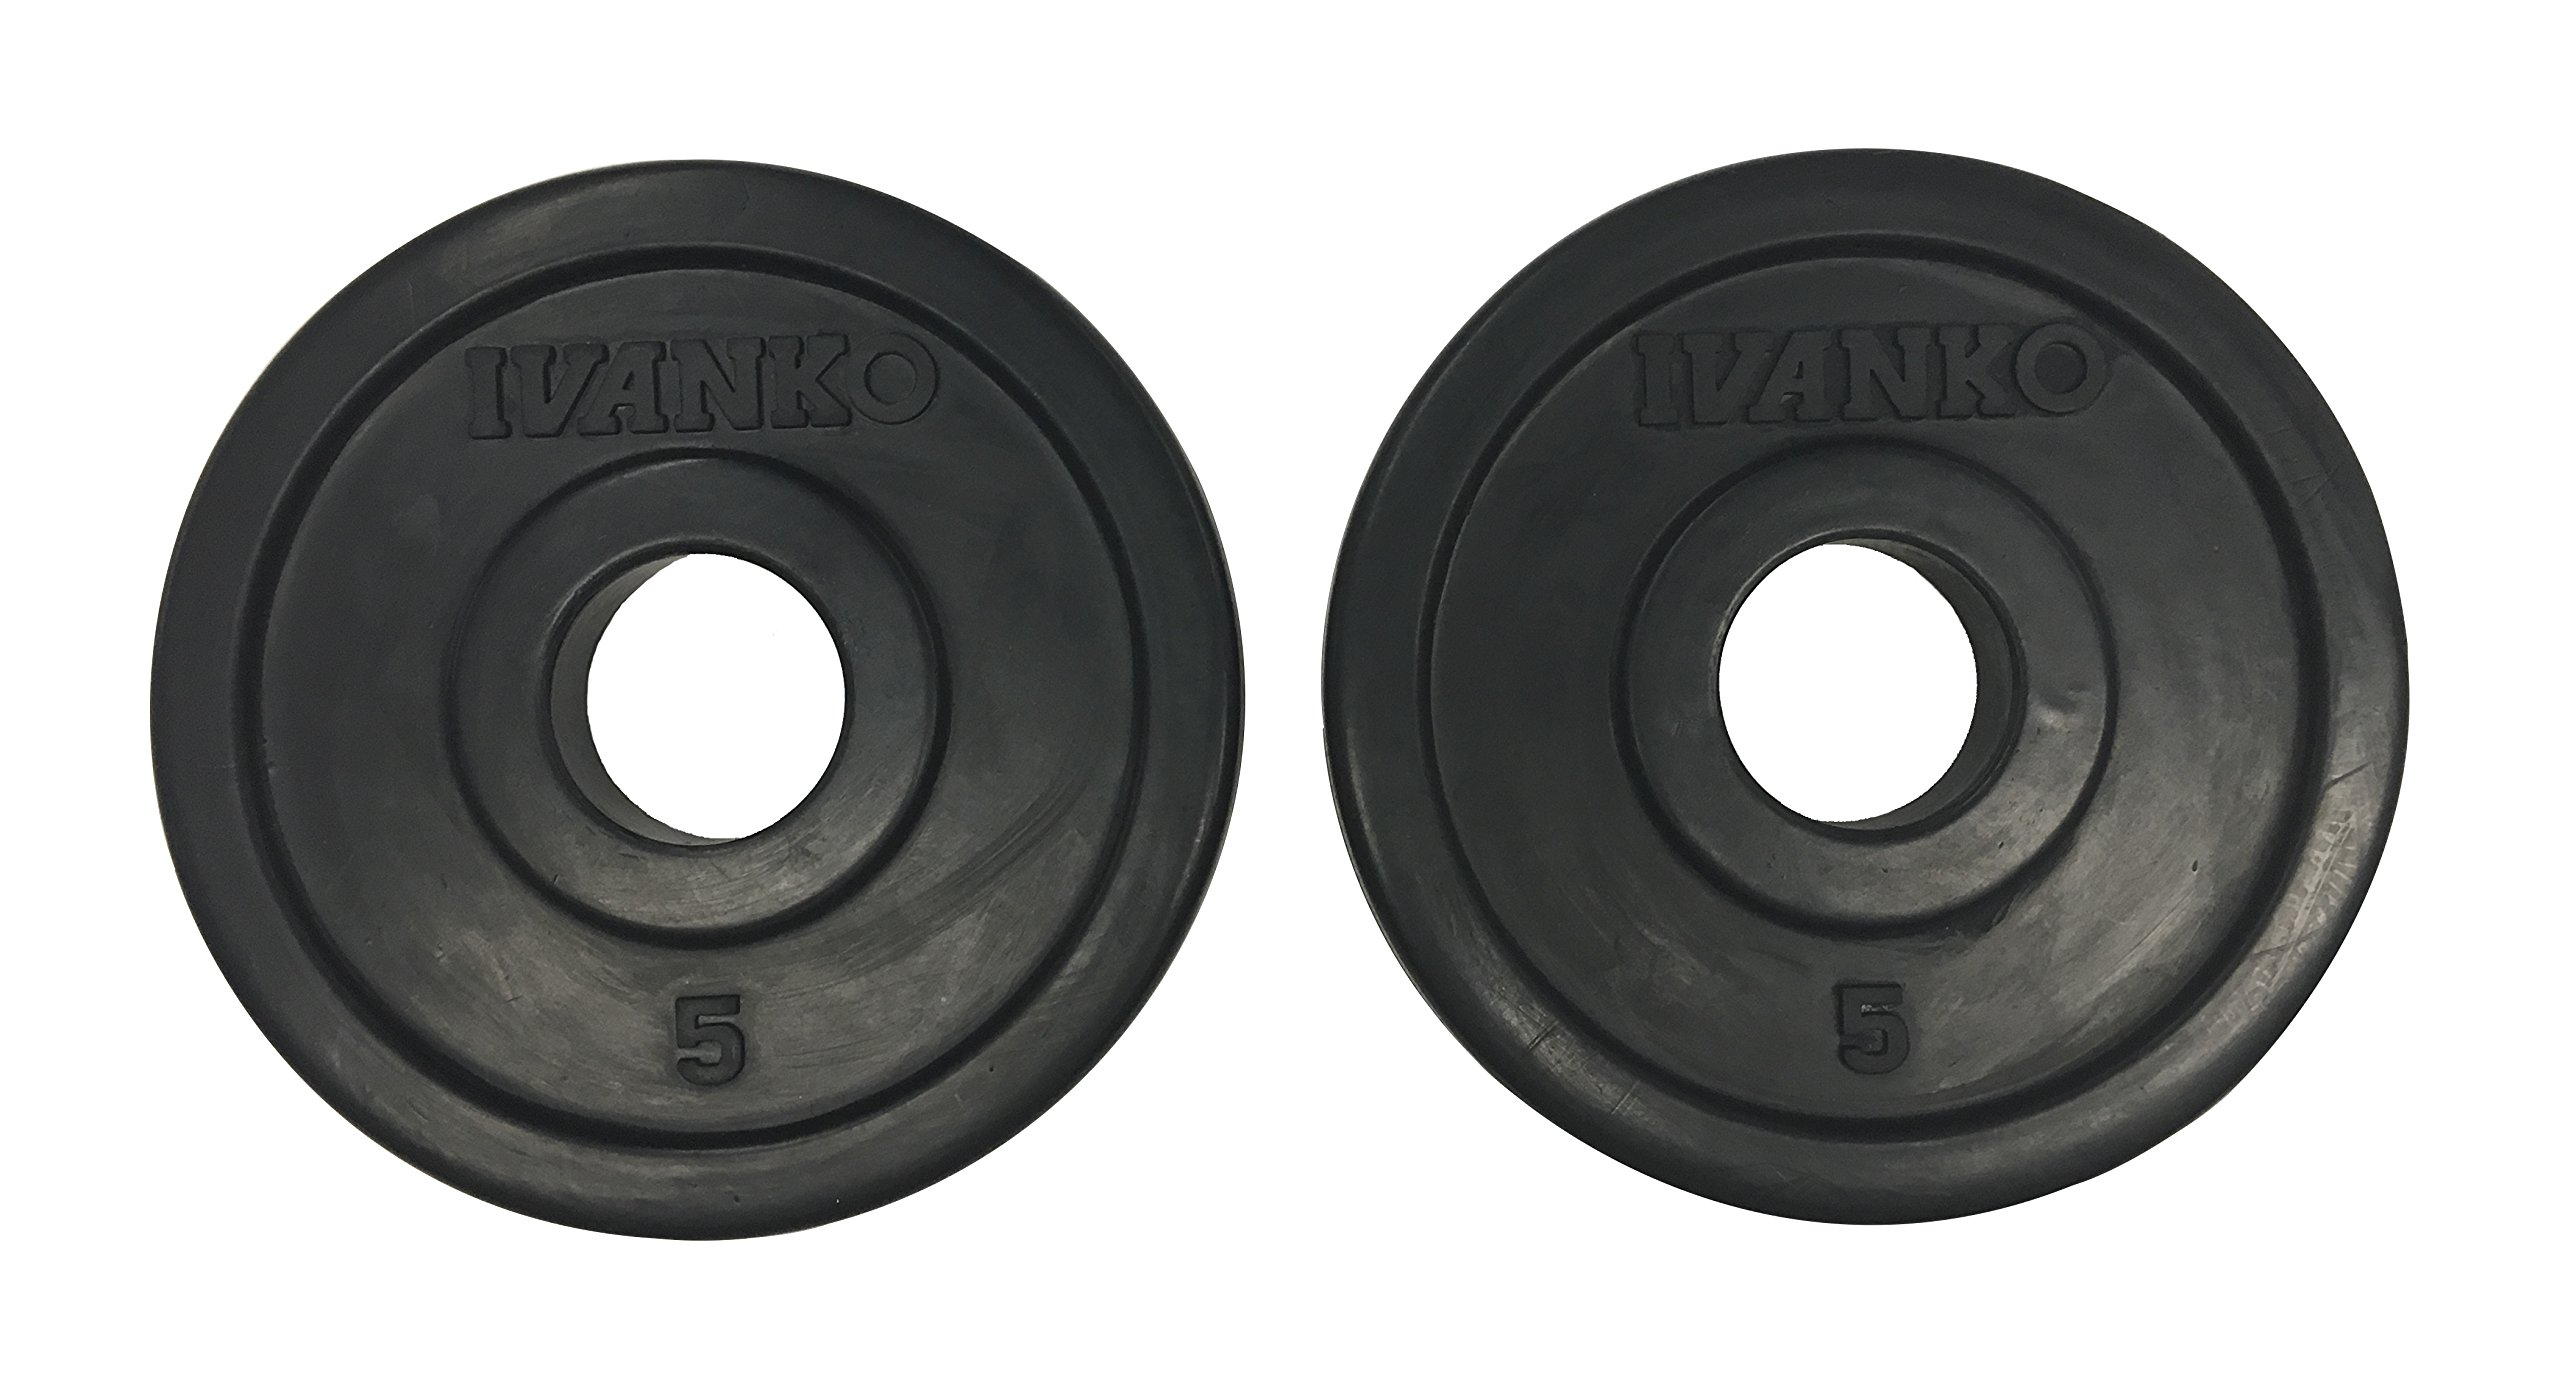 IVANKO (RUBO-5) Rubber Olympic Plate, Black, 5 lbs (PAIR) by Ivanko